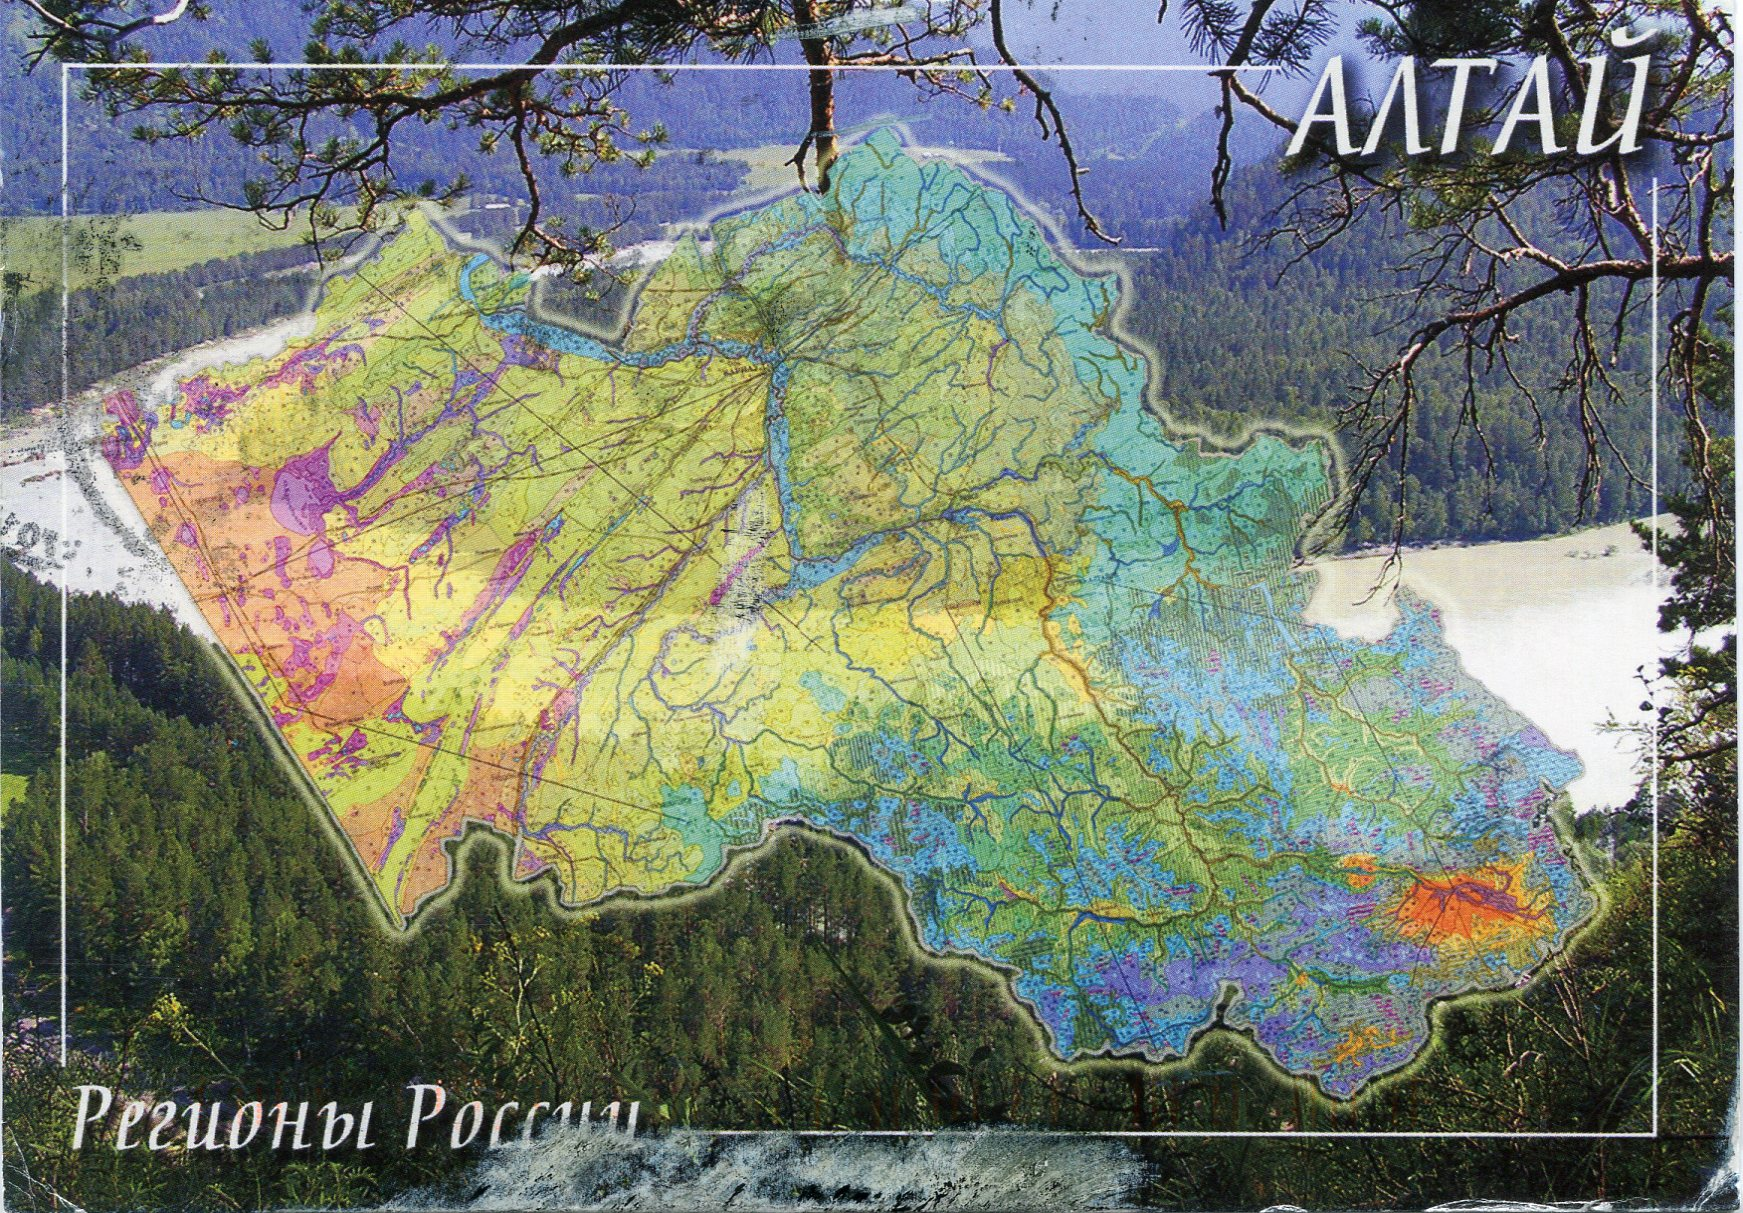 Where is Altai